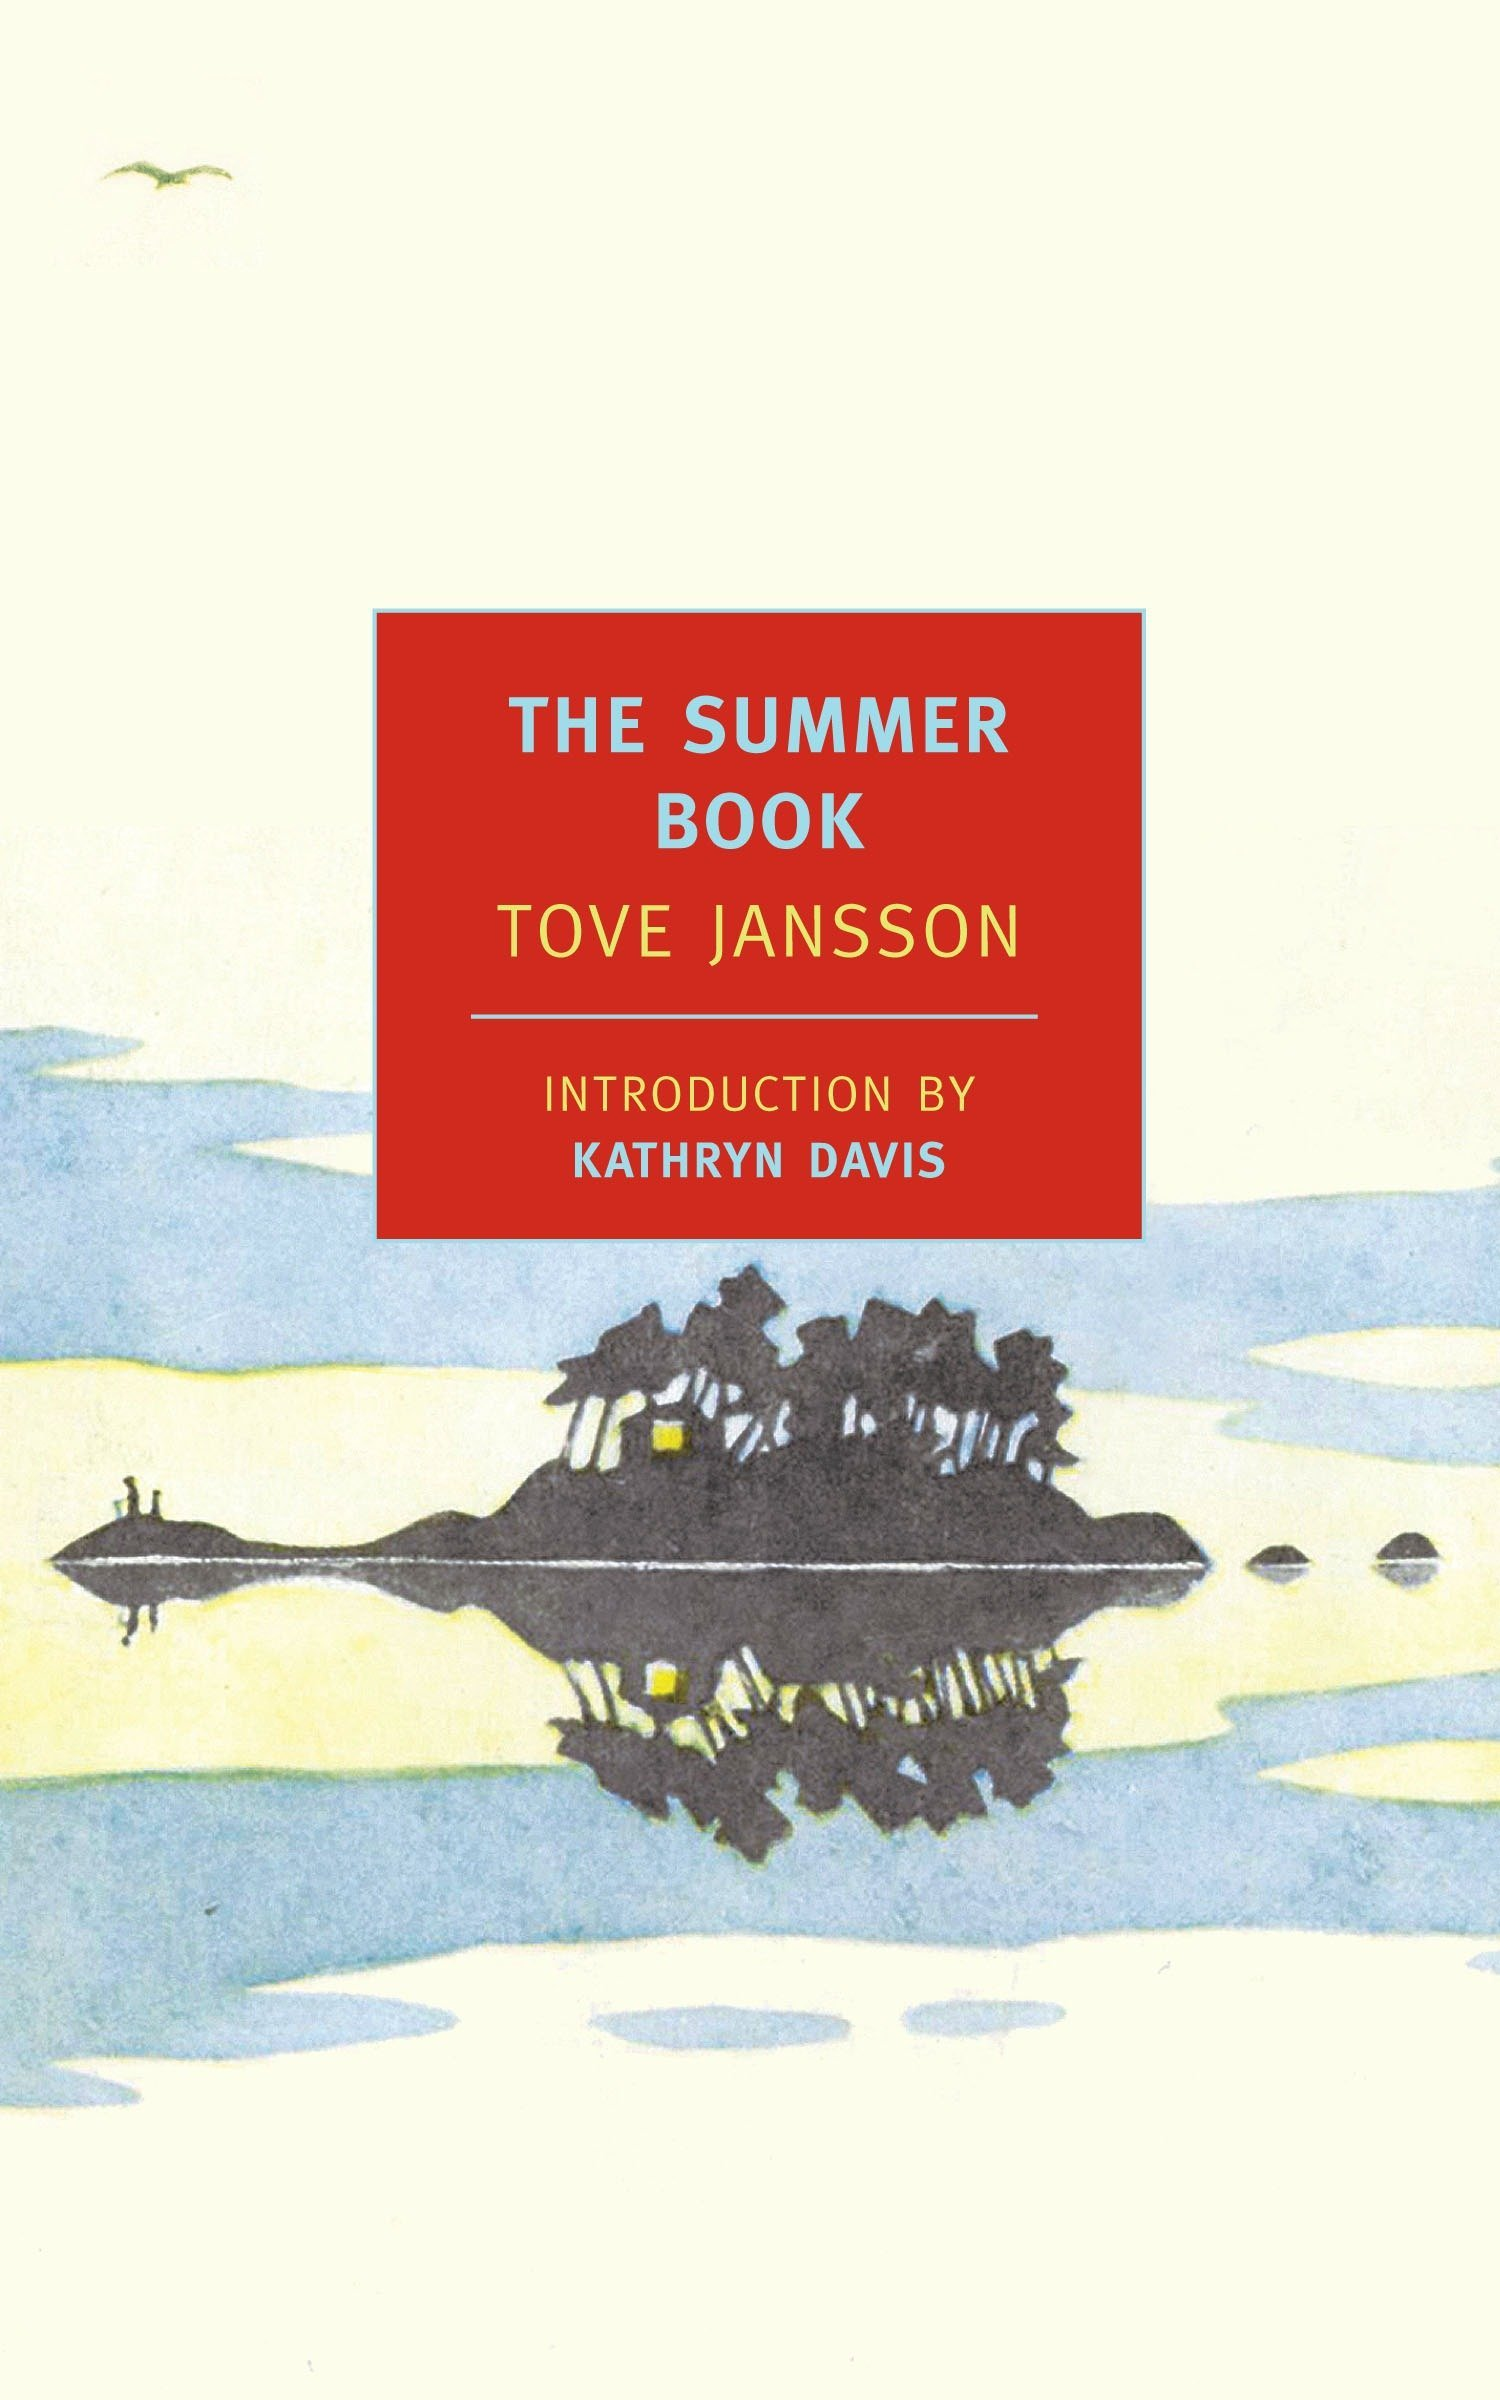 Image result for the summer book by tove jansson